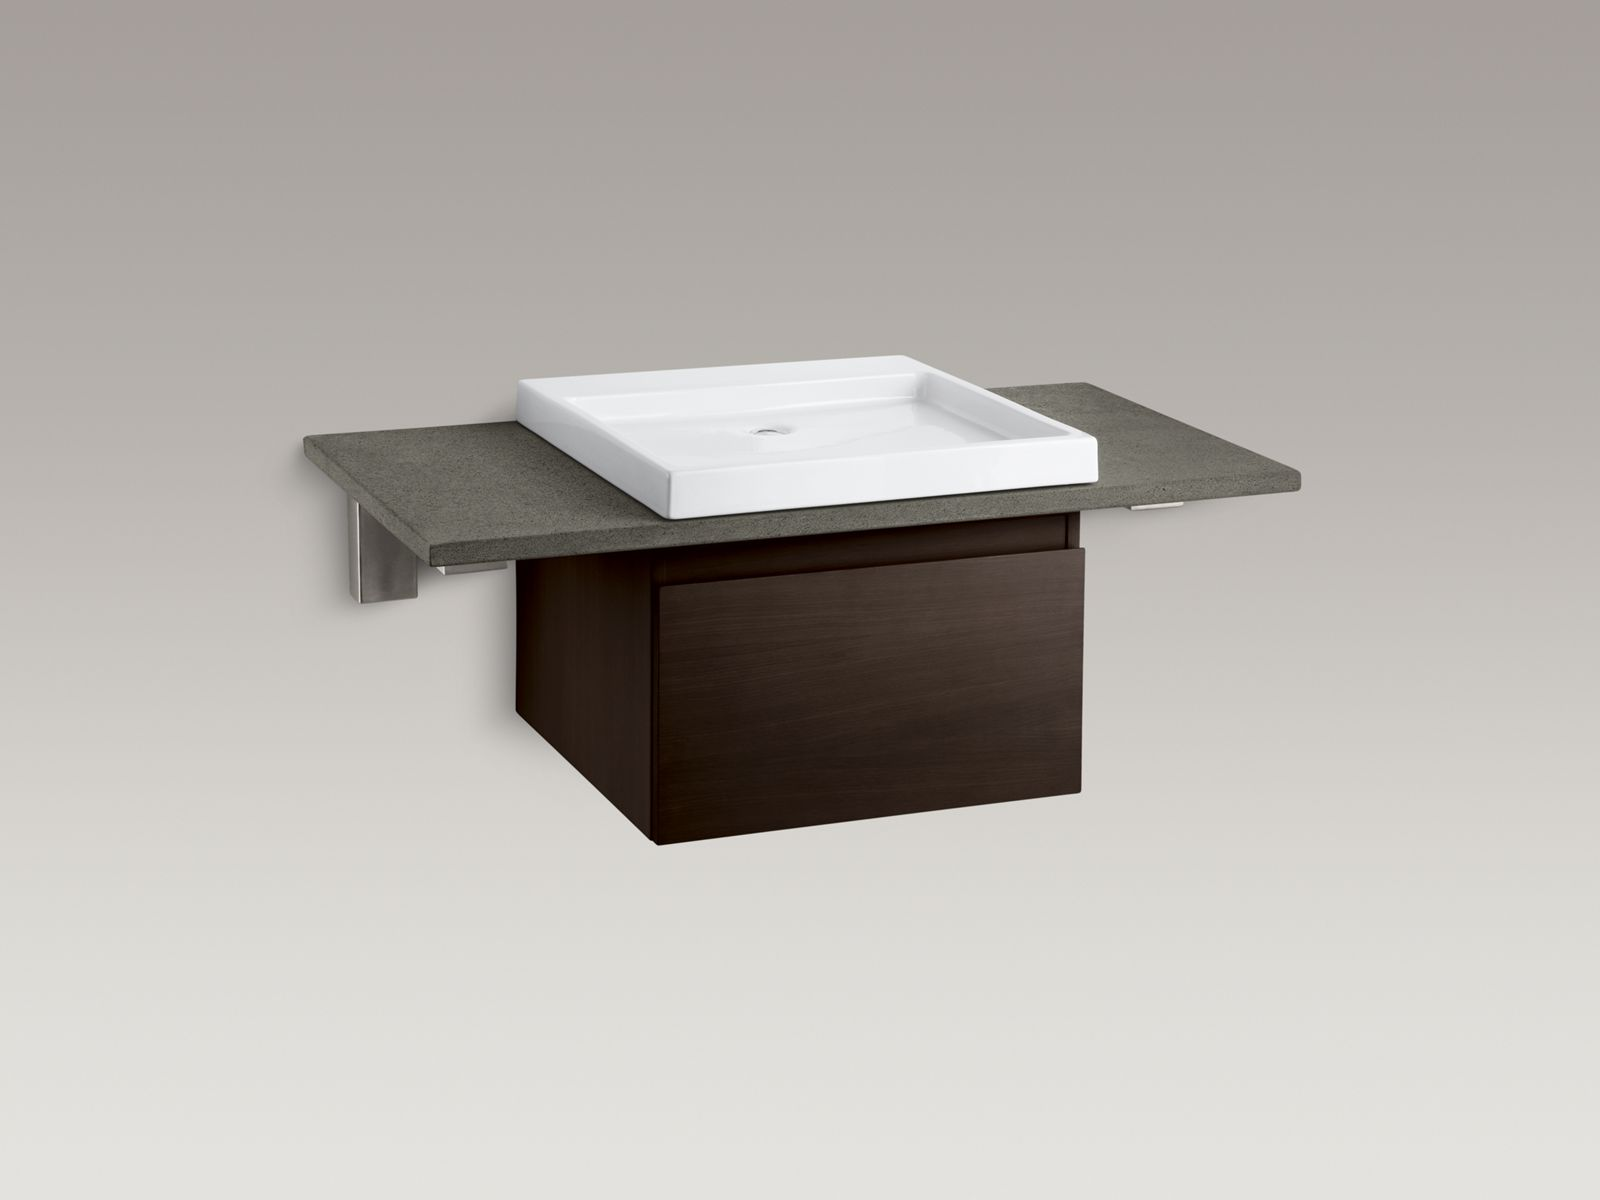 Shown with Purist® vanity K-3081-F5, Wading Pool® lavatory K-2314-0, and countertop brackets K-9667-NA and K-9676-NA, not included.